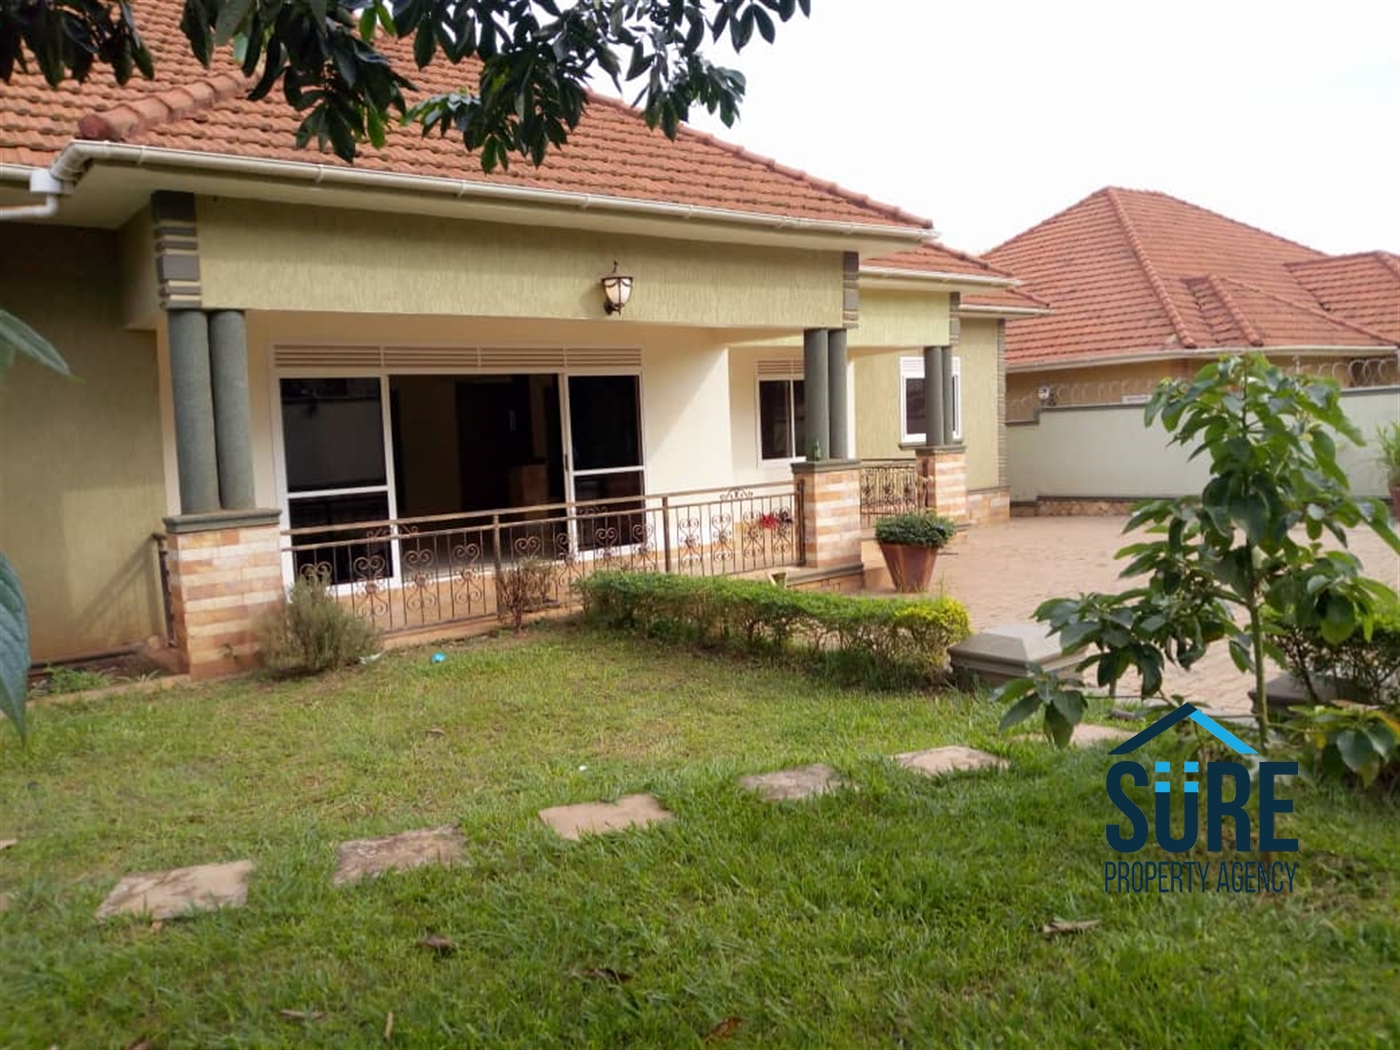 Bungalow for rent in Kiwatule Kampala